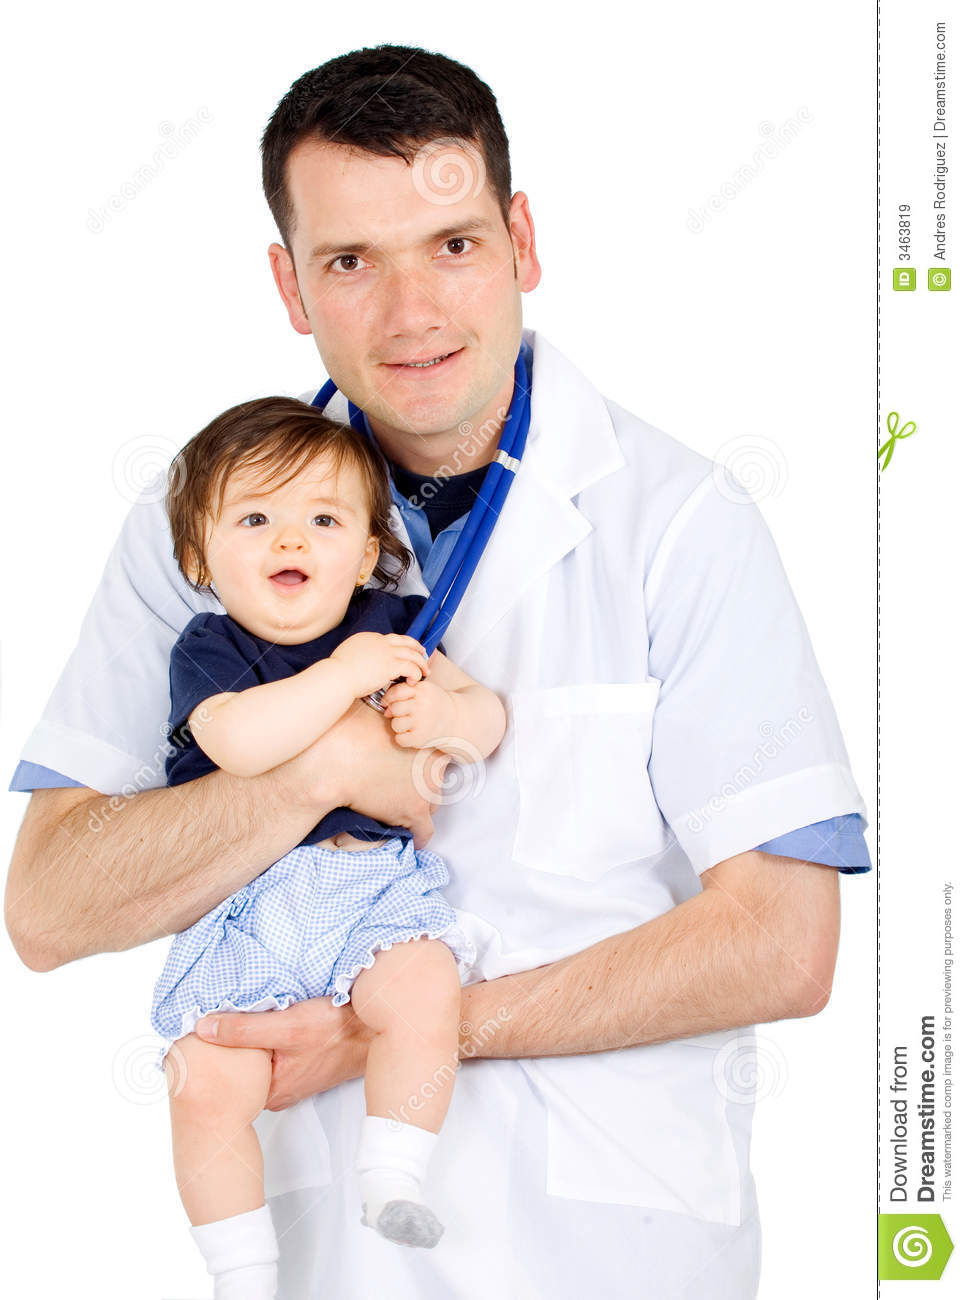 Male pediatrician and a baby girl where both are smiling and isolated ...